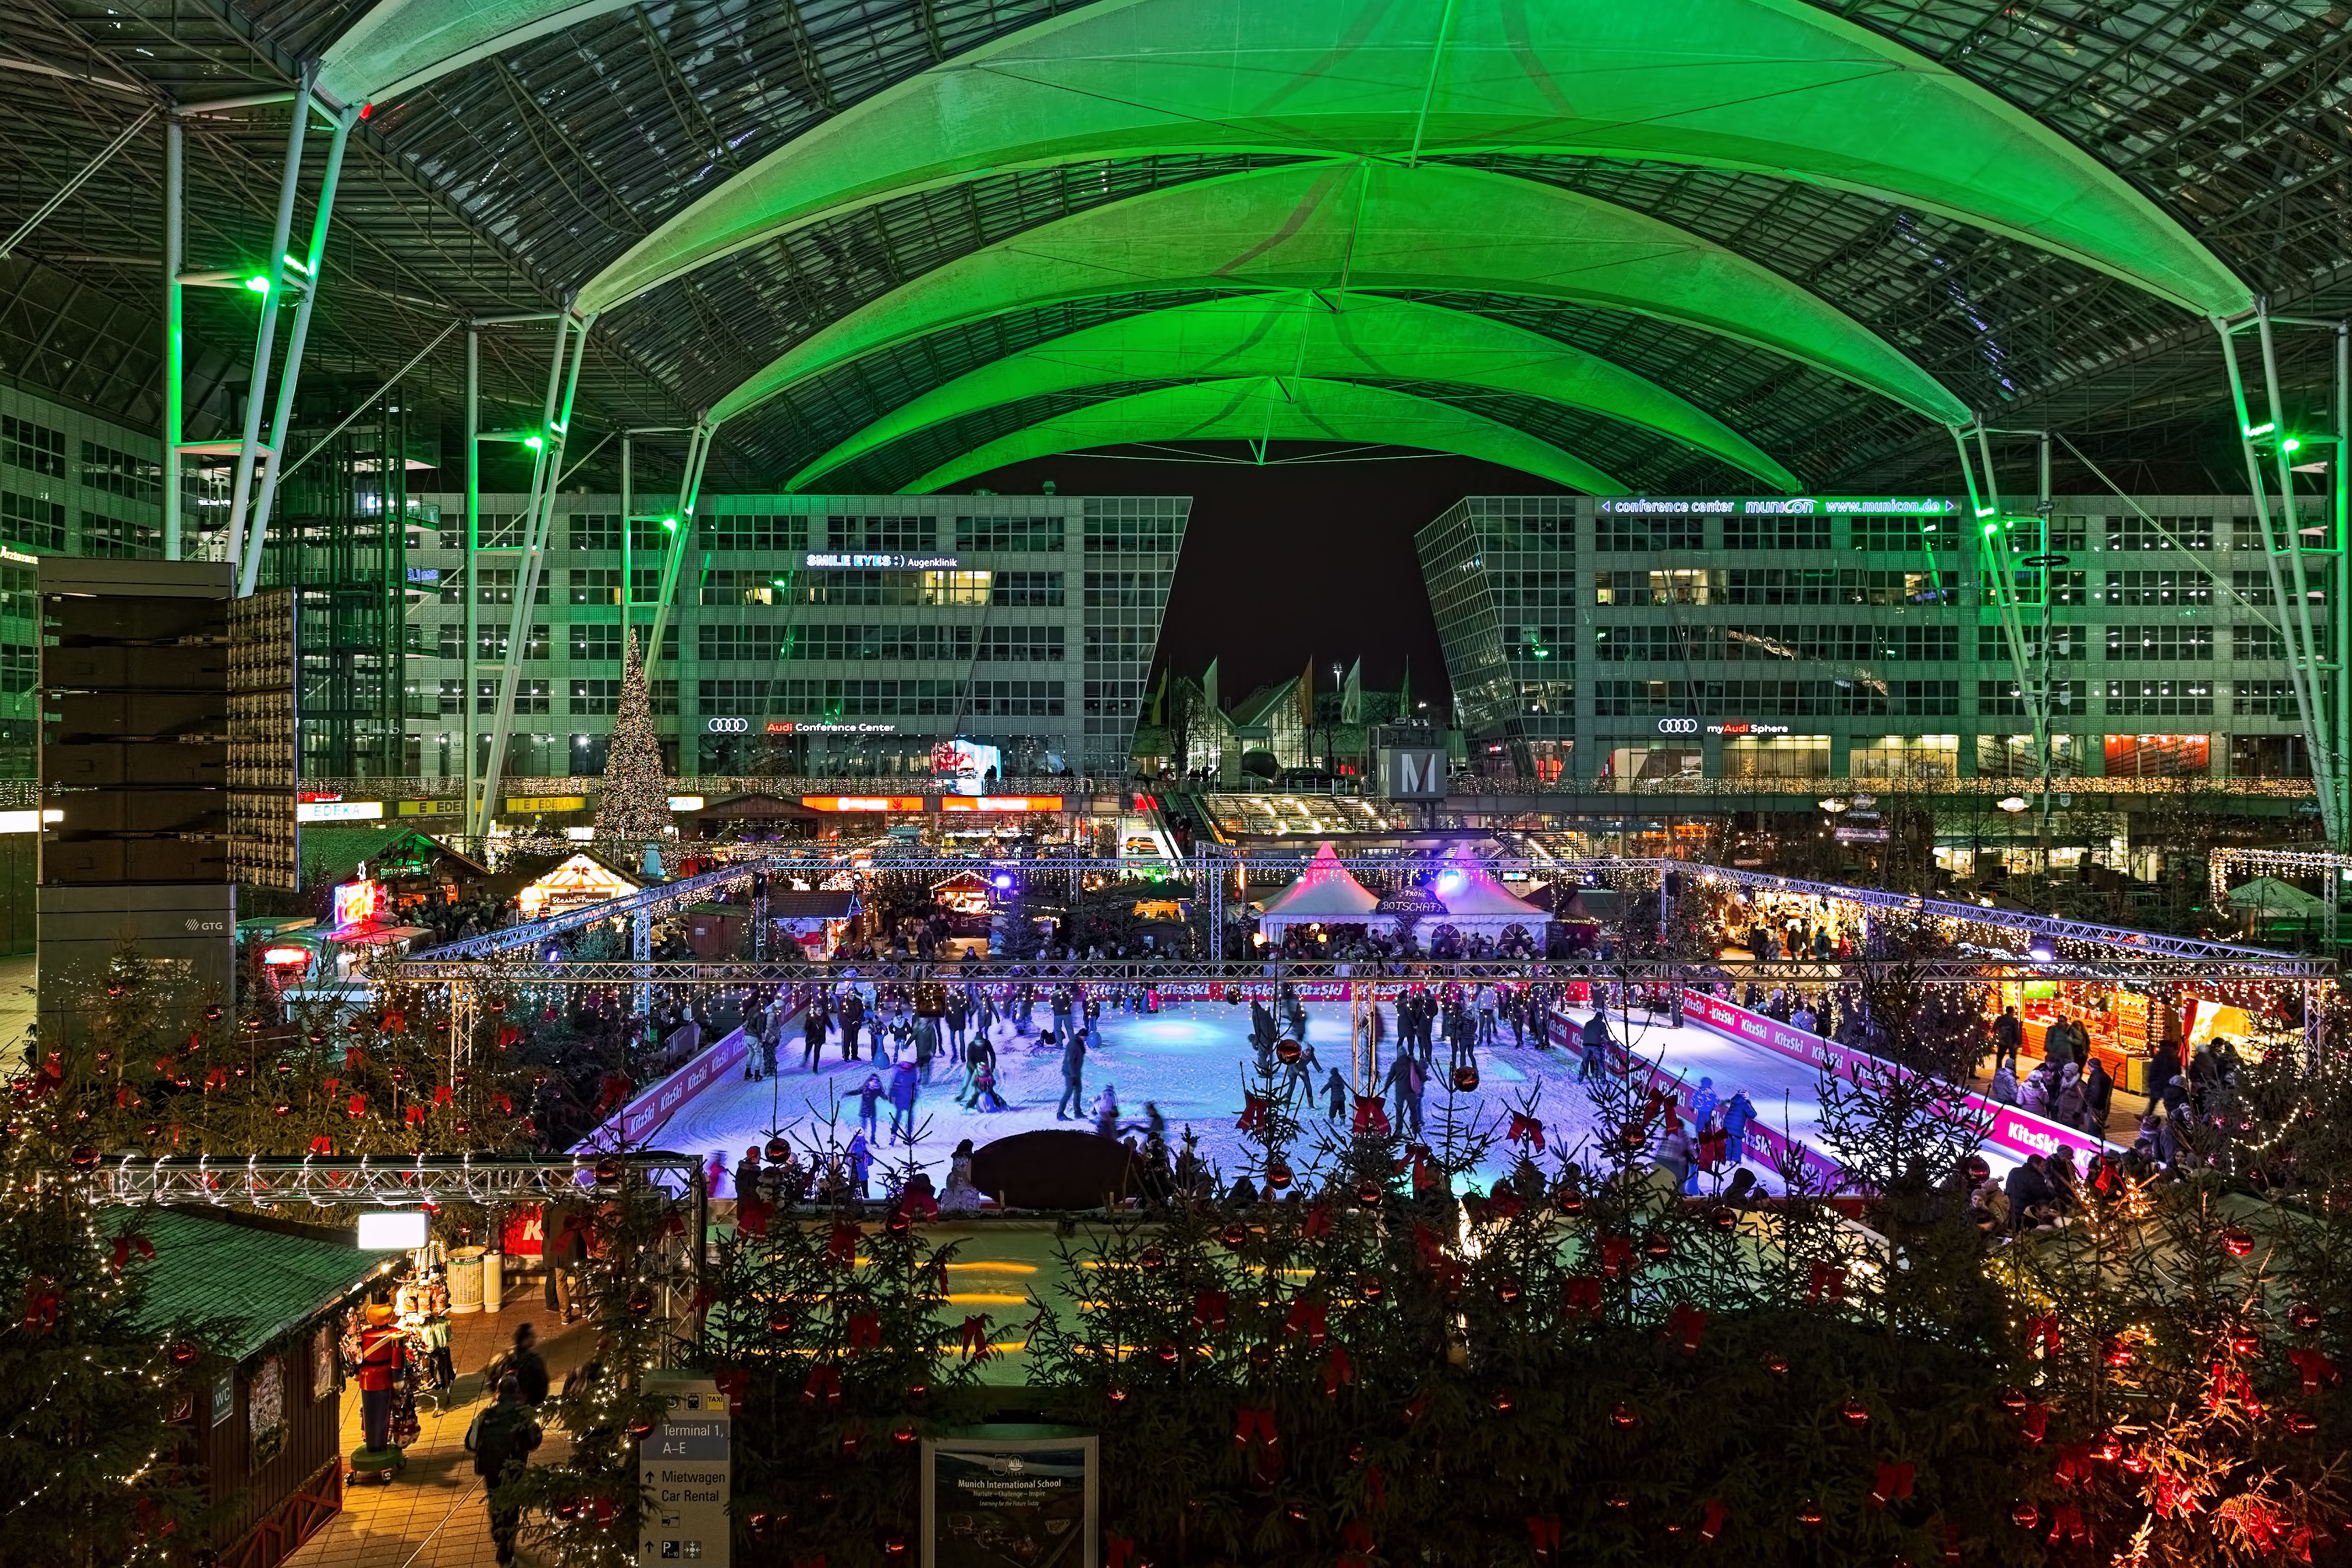 Christmas and Winter Market and ice rink in the Munich Airport.